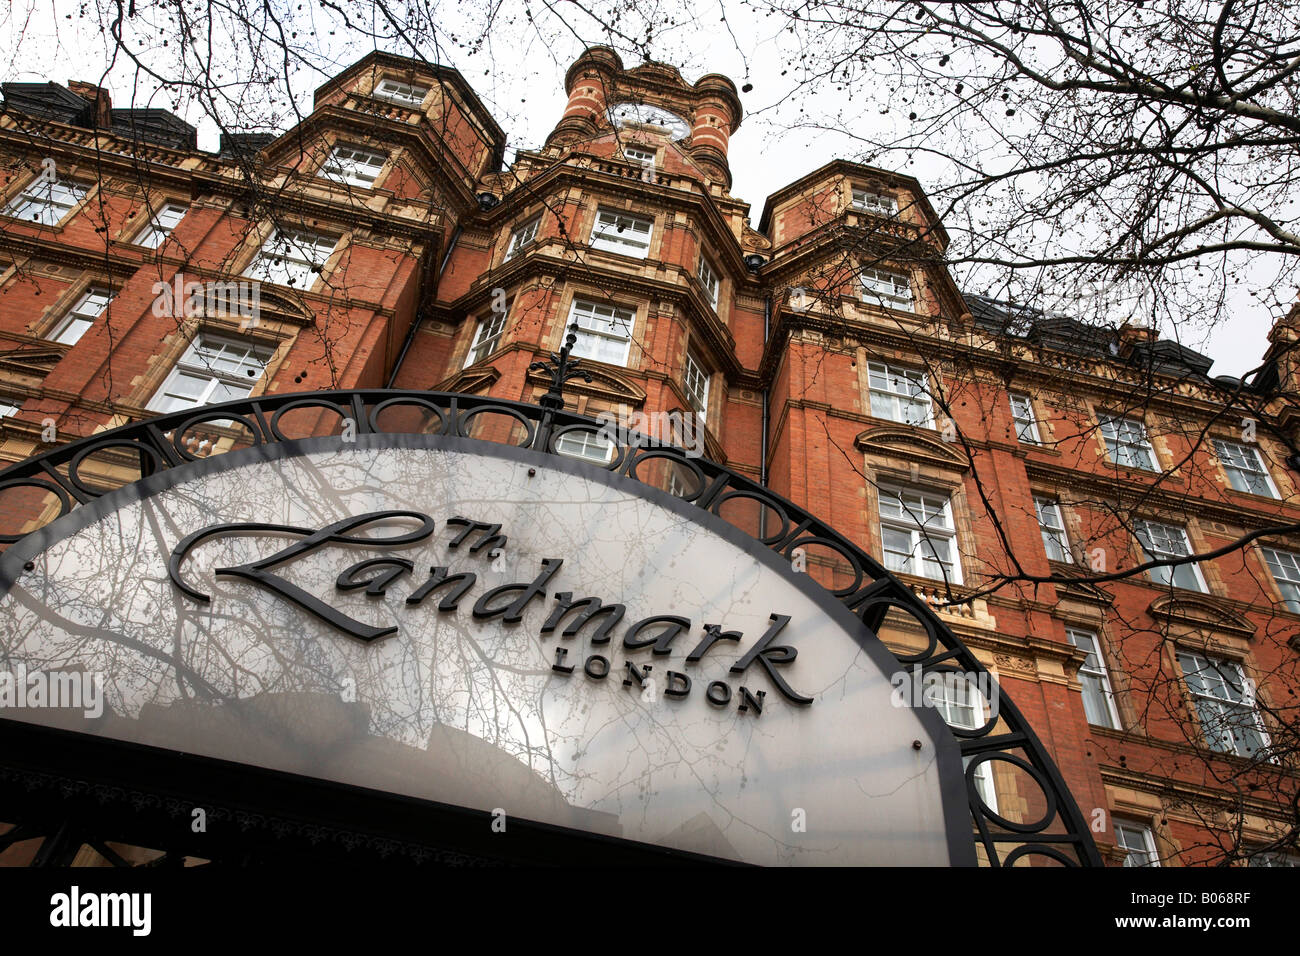 Detail of the entrance to The Landmark Hotel, London, UK - Stock Image